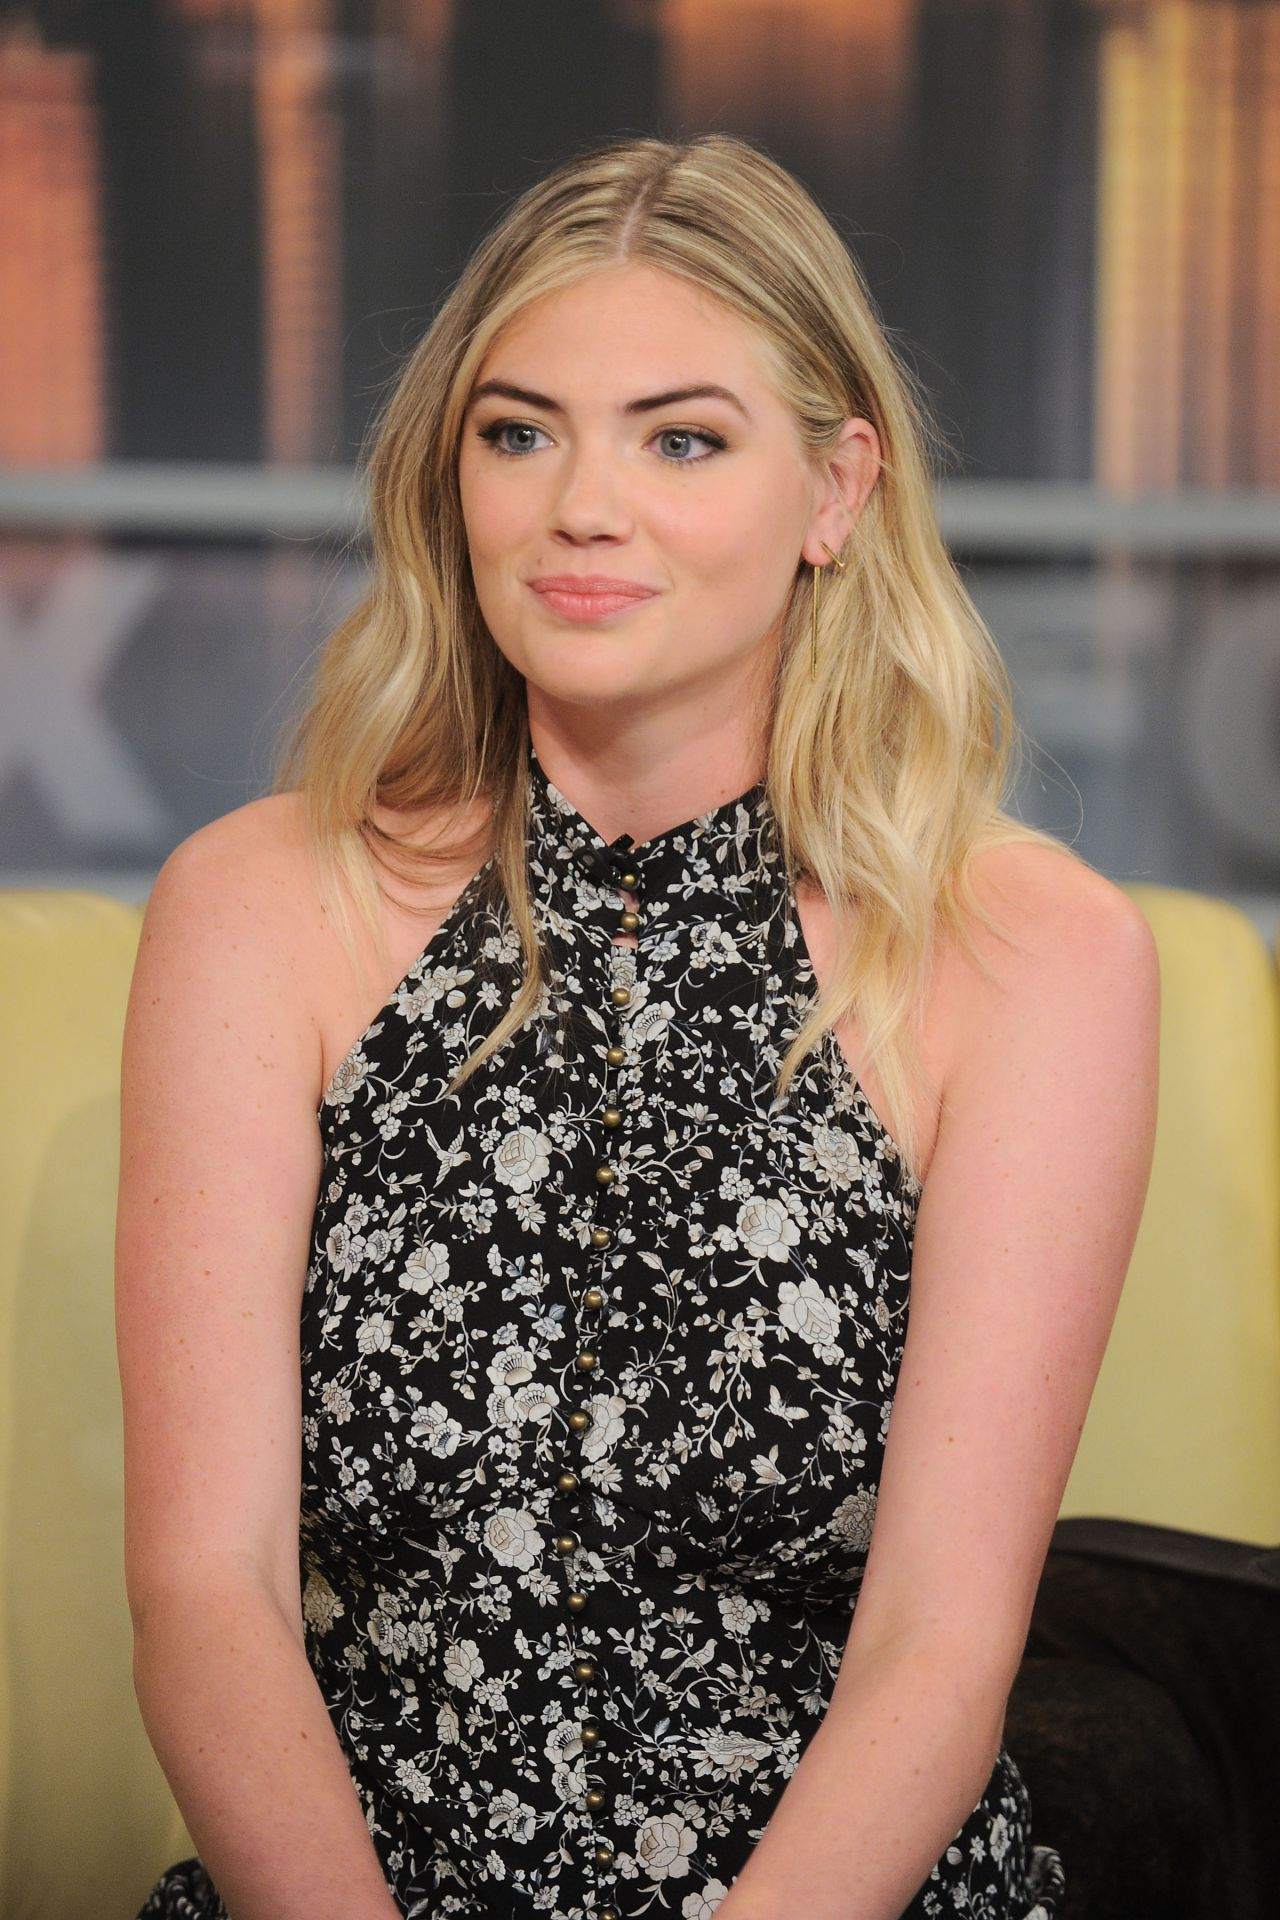 Kate upton on good day new york - 2019 year